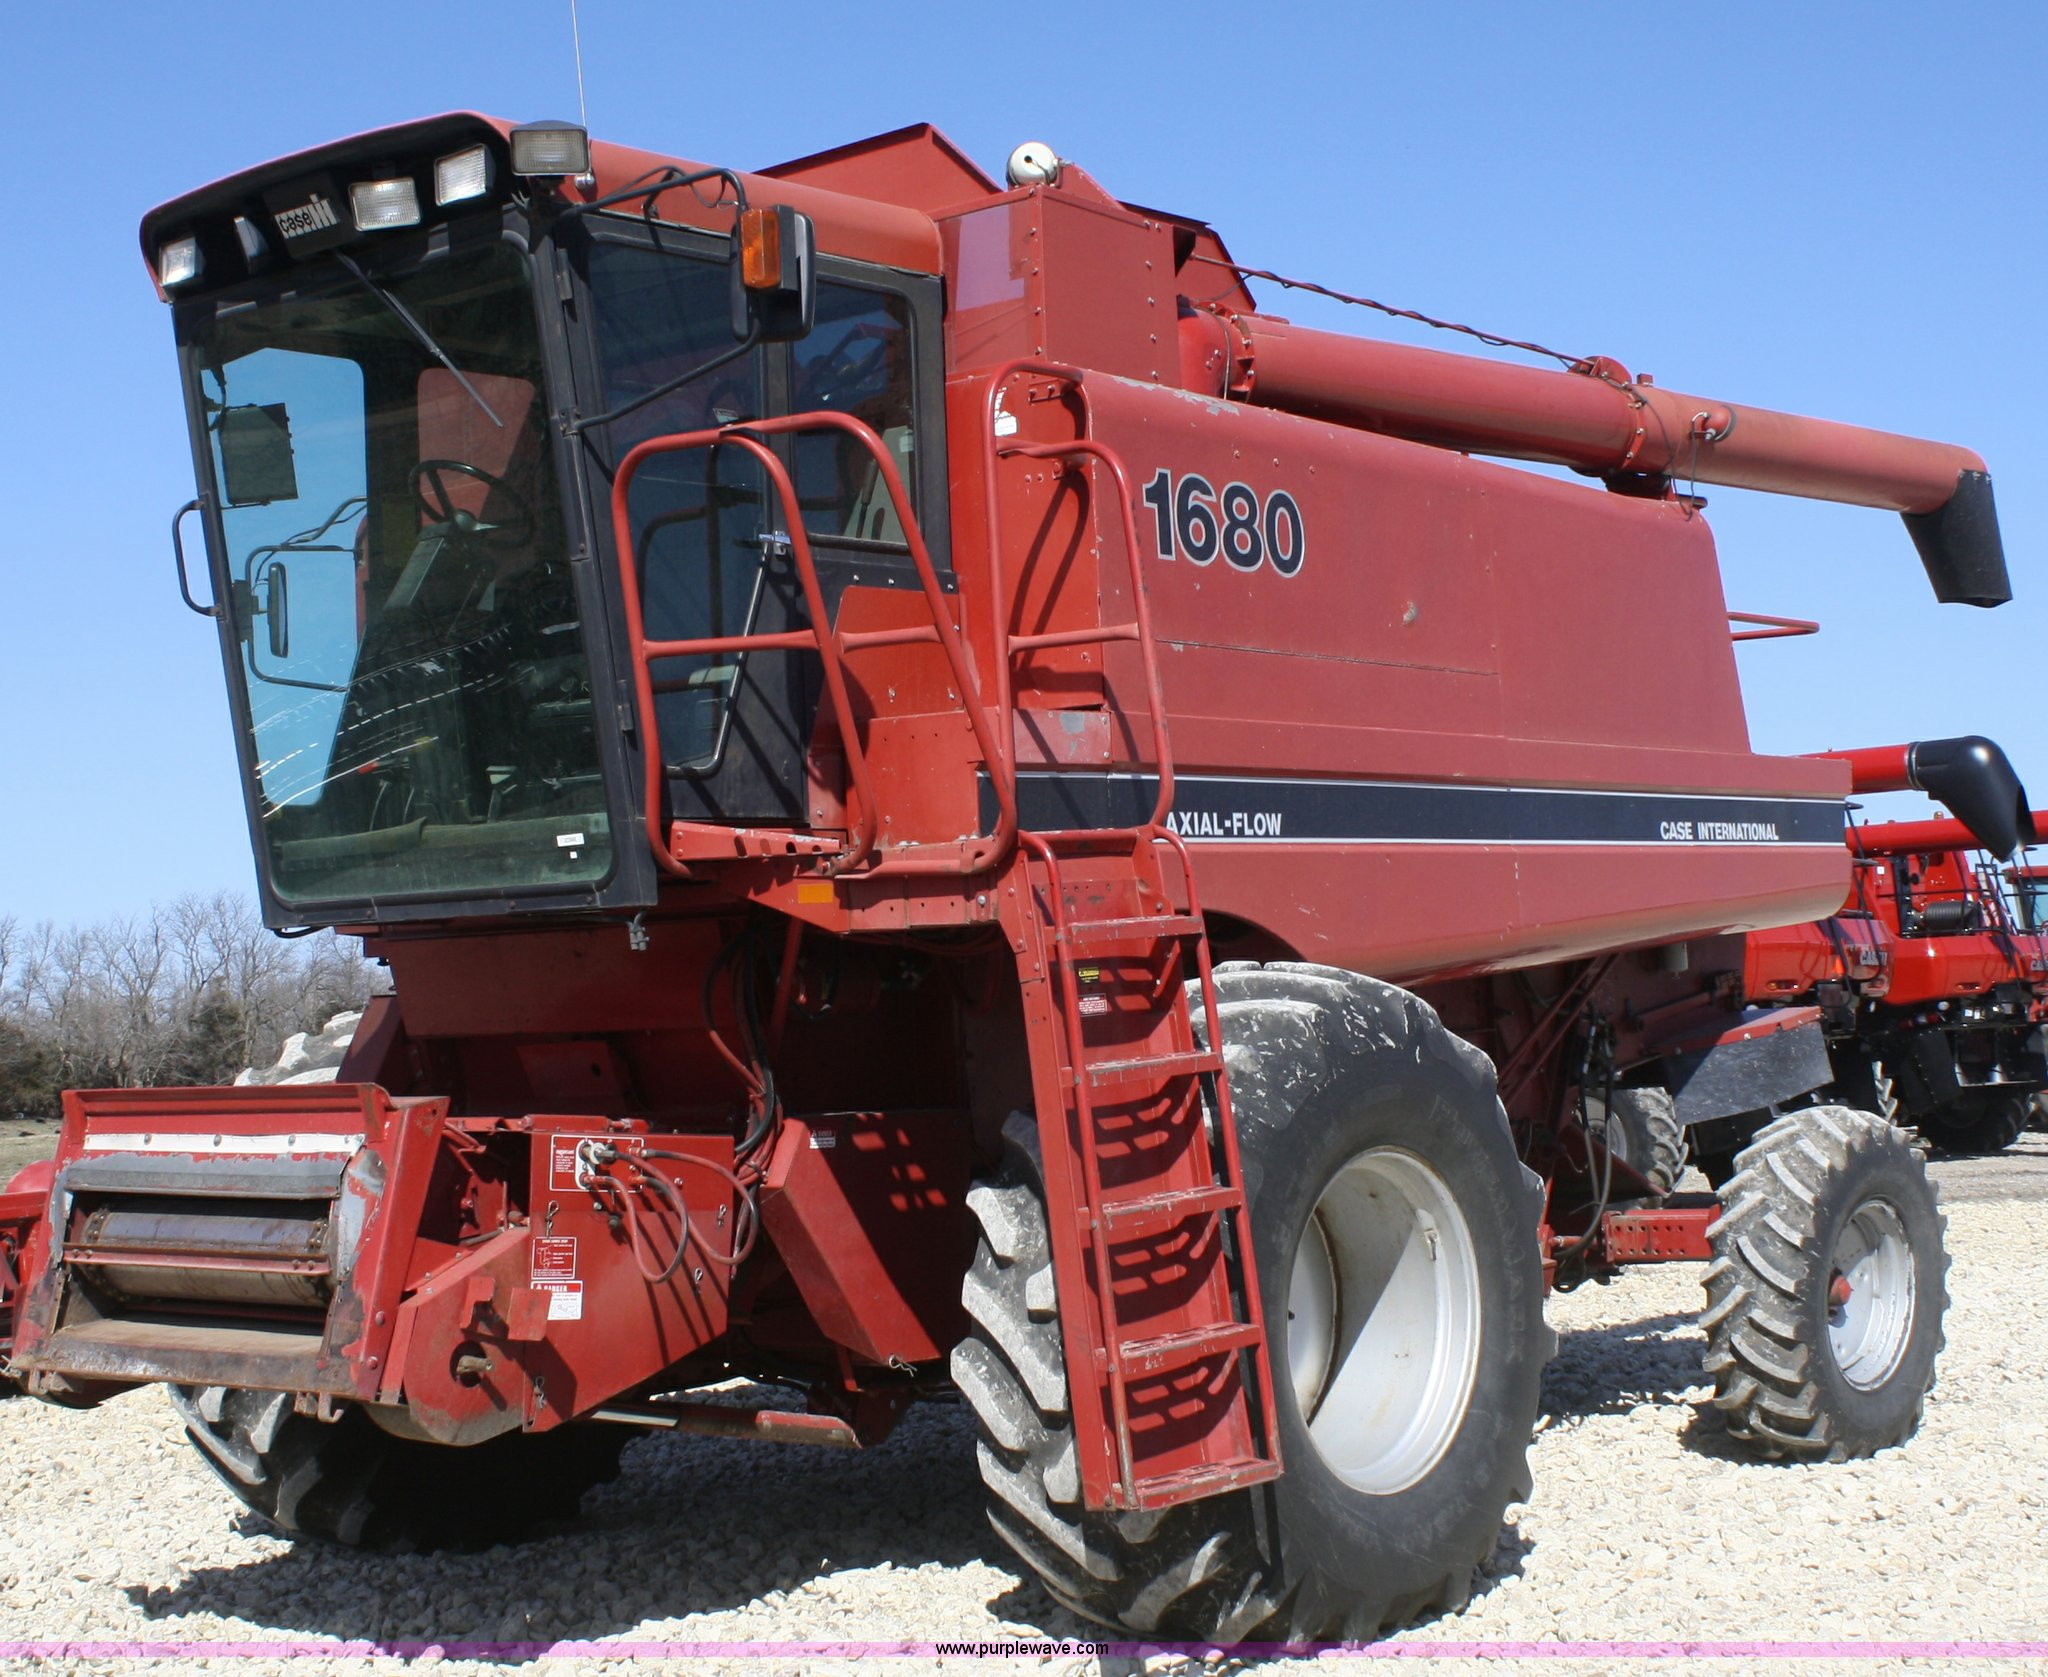 Case Ih 1680 Wiring Diagram Libraries International Diagrams Combine Schematic Diagrams1988 Axial Flow Item A6830